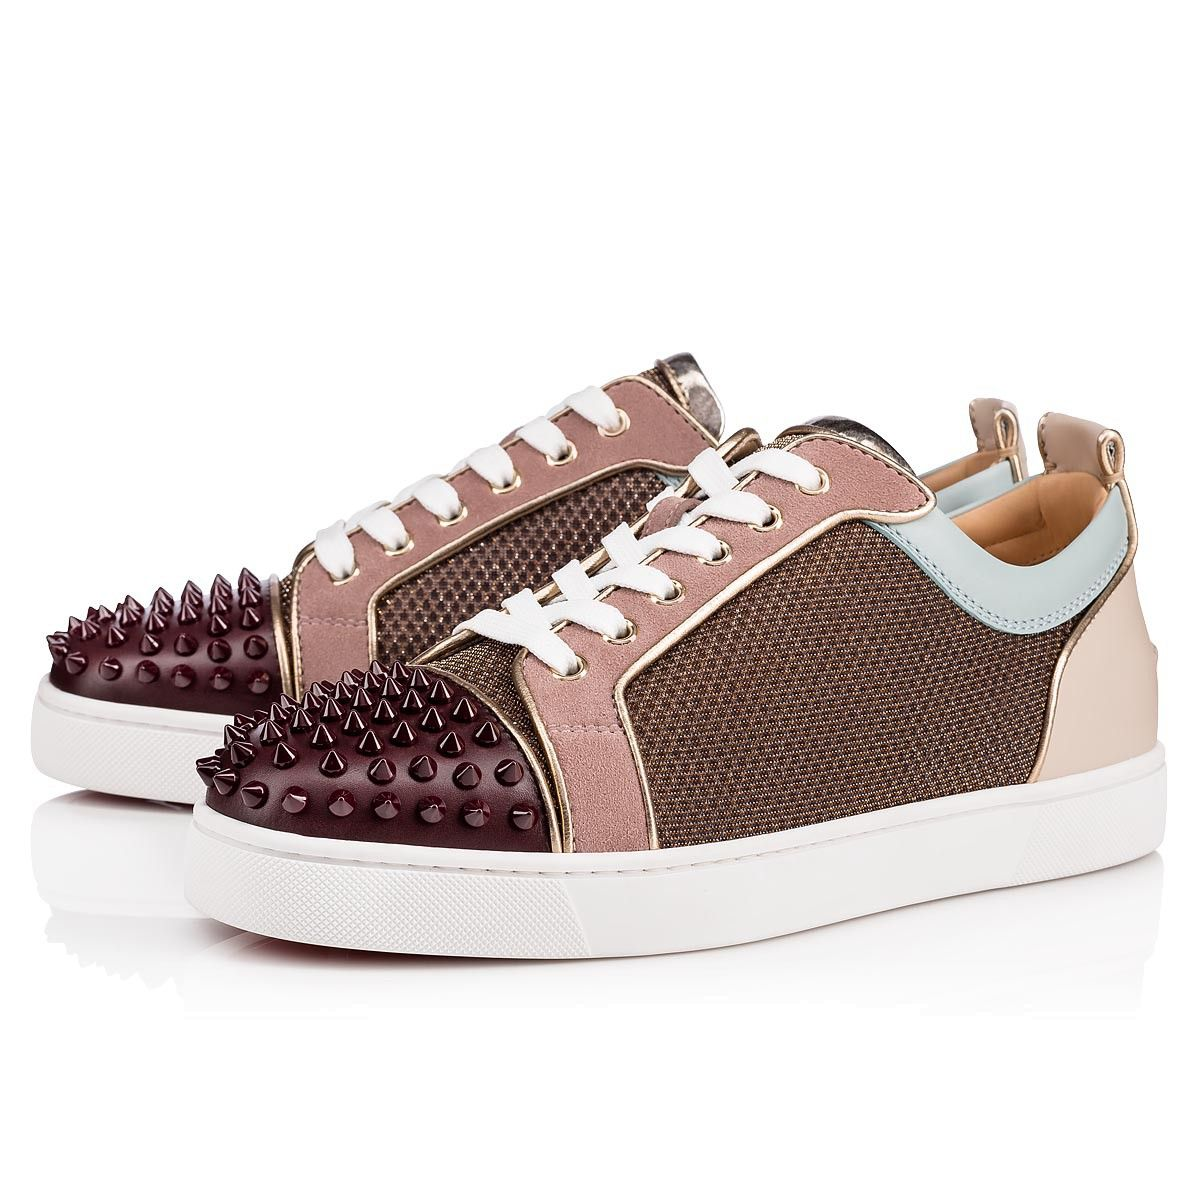 outlet store 772a4 57929 CHRISTIAN LOUBOUTIN Louis Junior Spikes Orlato Men's Flat ...